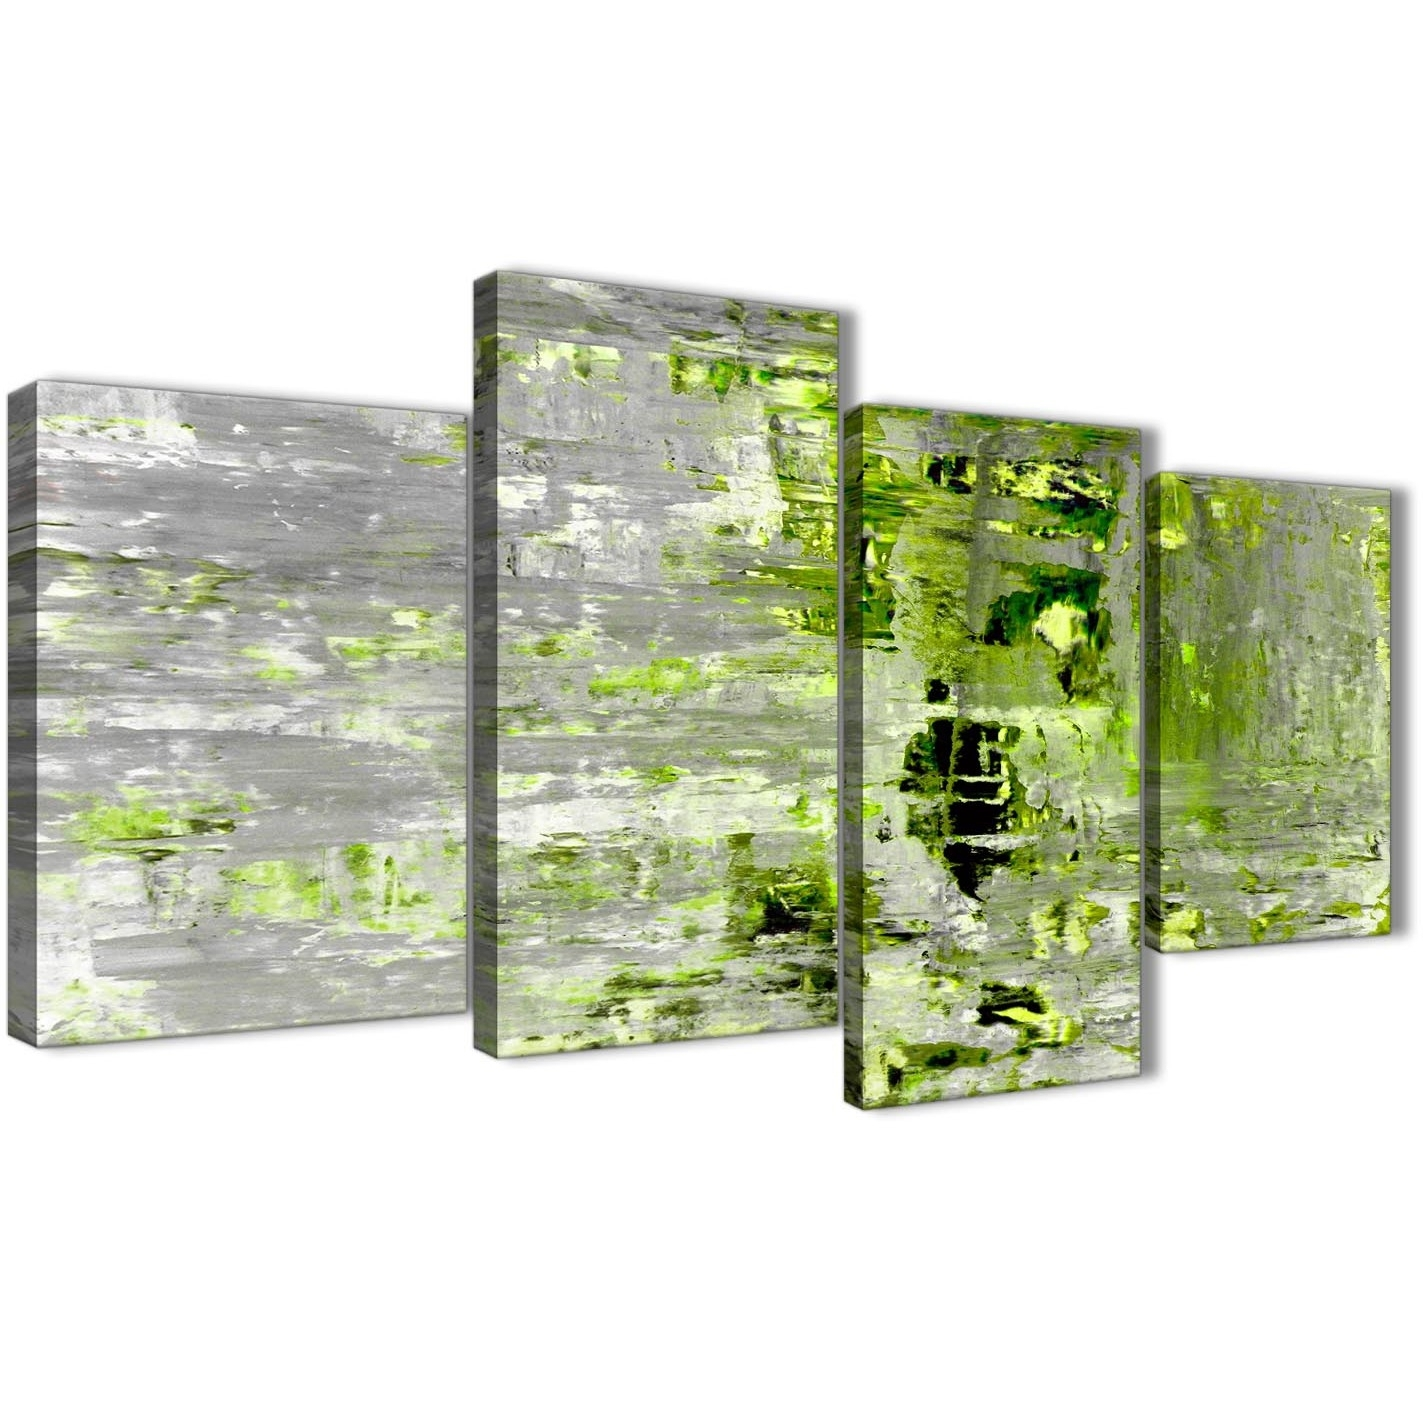 Large Lime Green Grey Abstract Painting Wall Art Print Canvas Pertaining To Most Current Lime Green Canvas Wall Art (View 8 of 15)